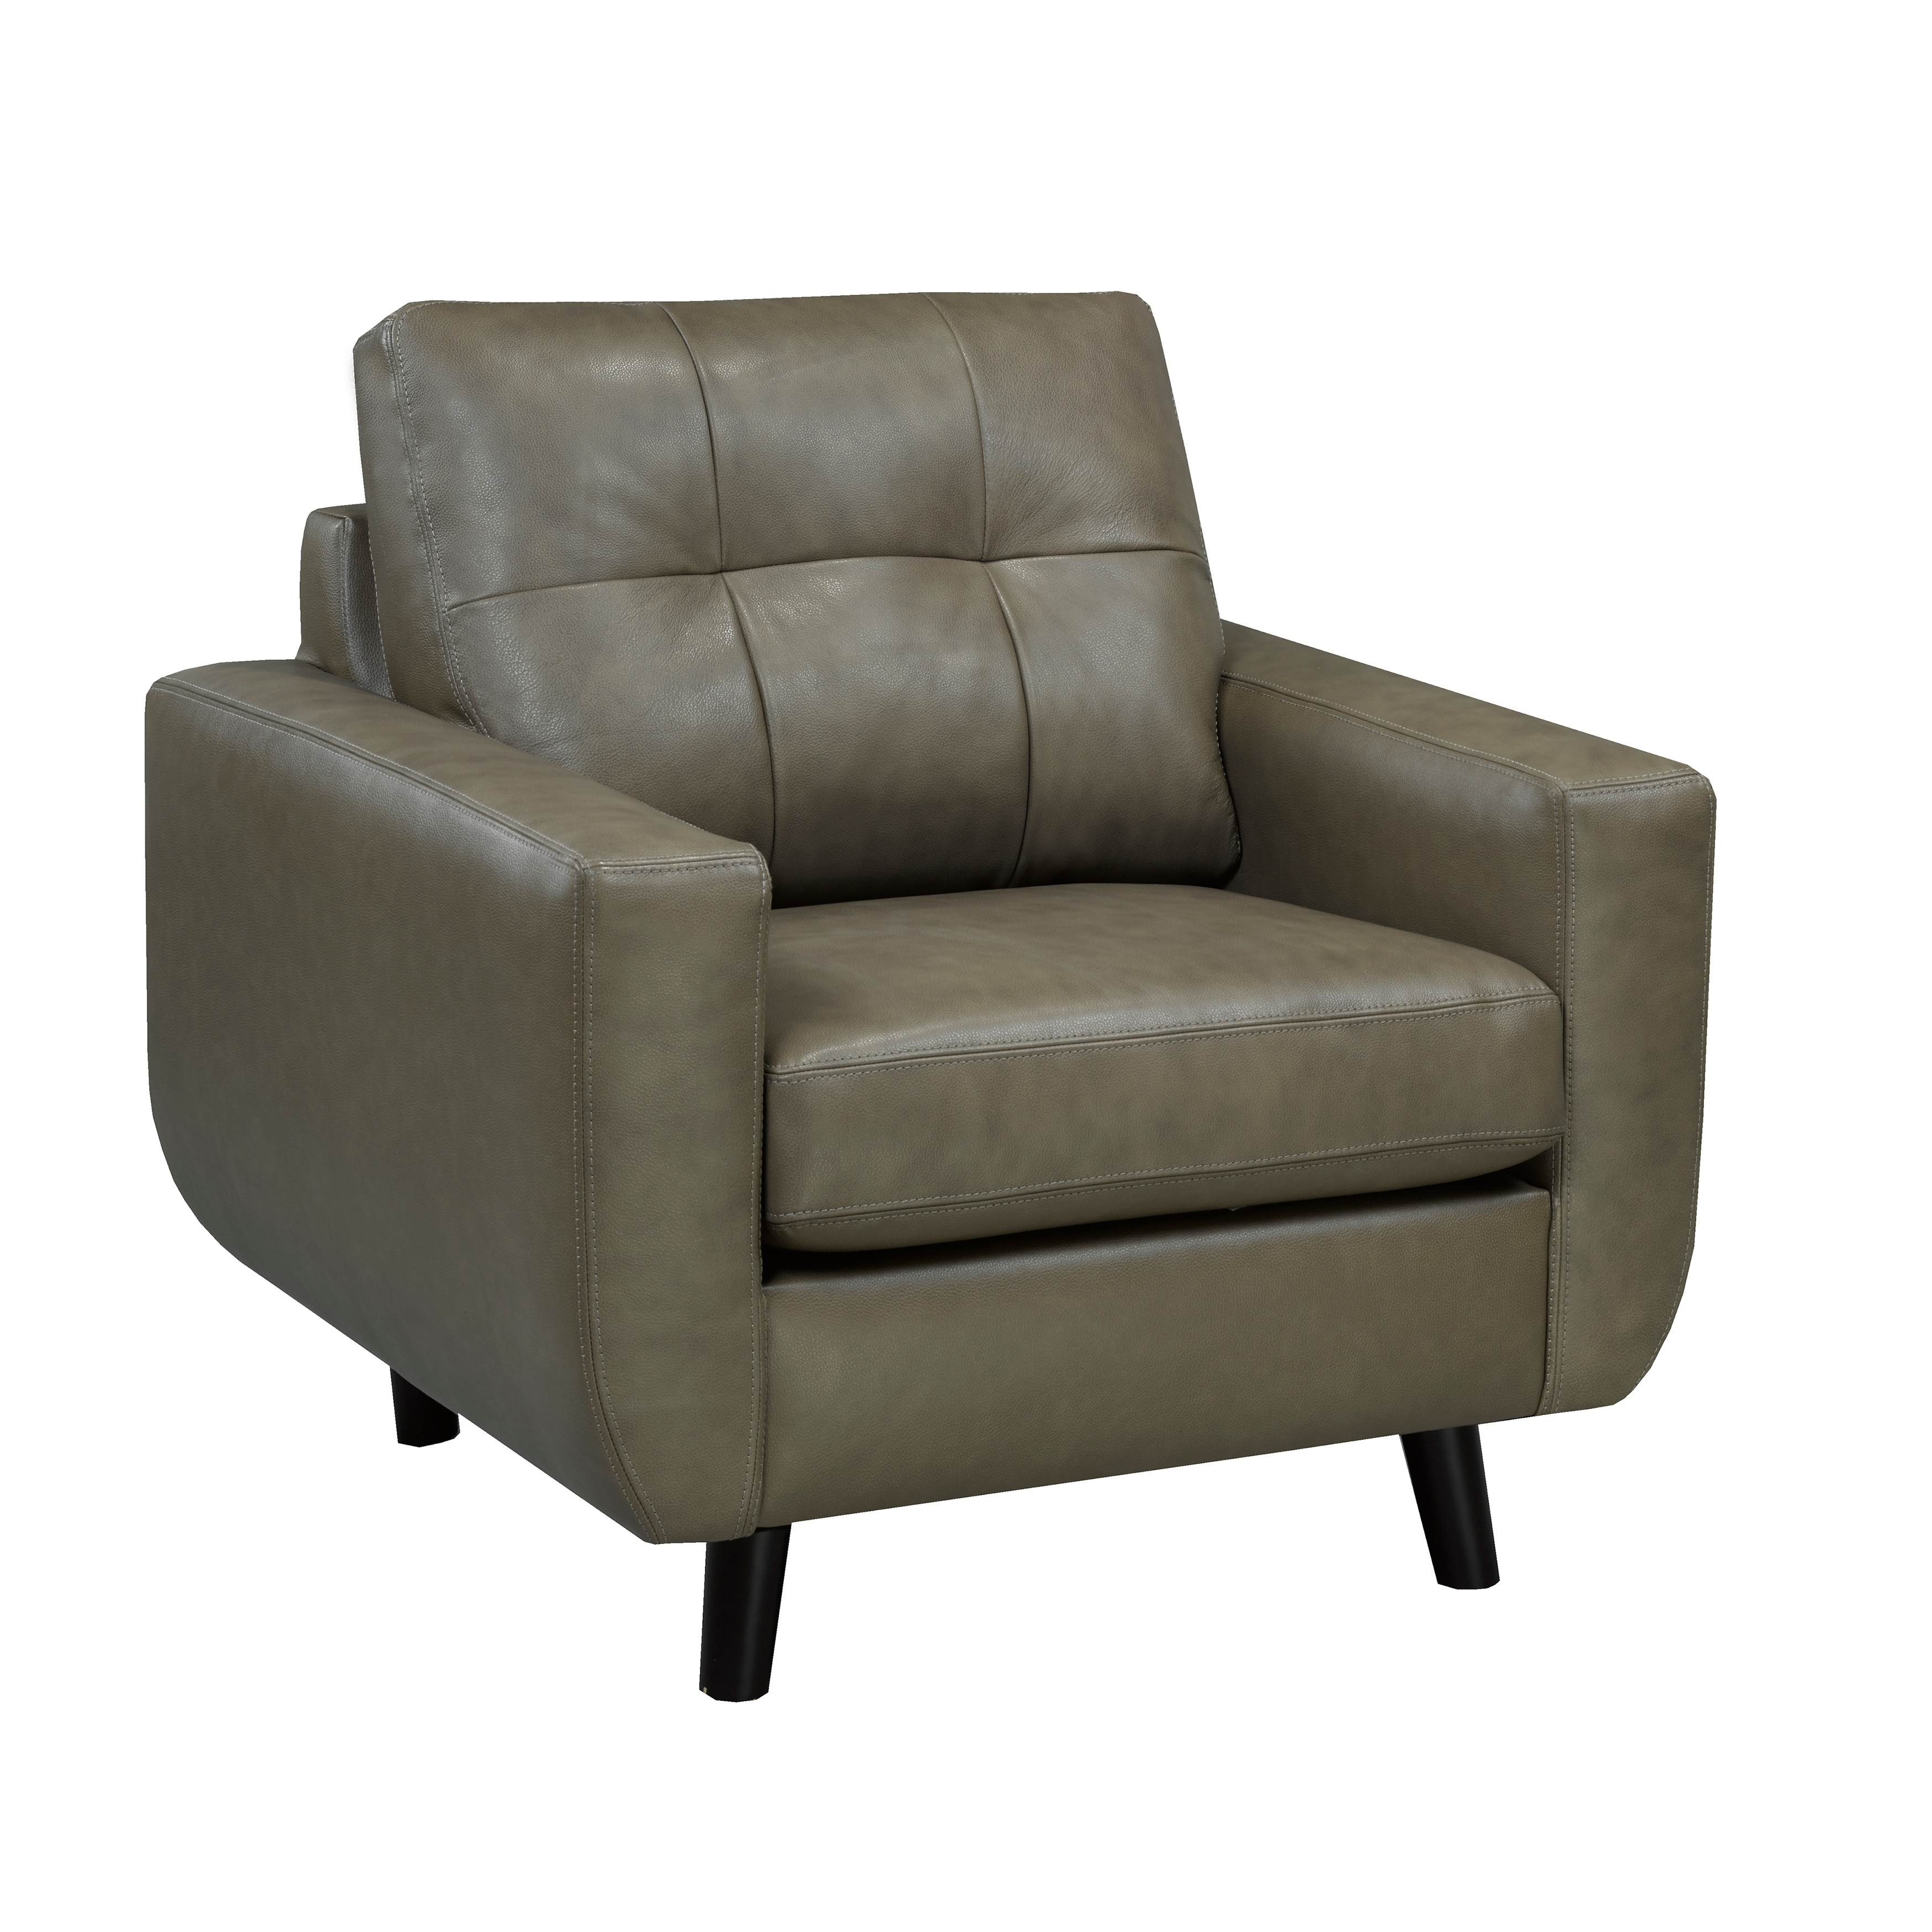 Swell Maisie Mid Century Modern Moss Green Grey Top Grain Italian Leather Tufted Sofa Loveseat And Chair Gamerscity Chair Design For Home Gamerscityorg